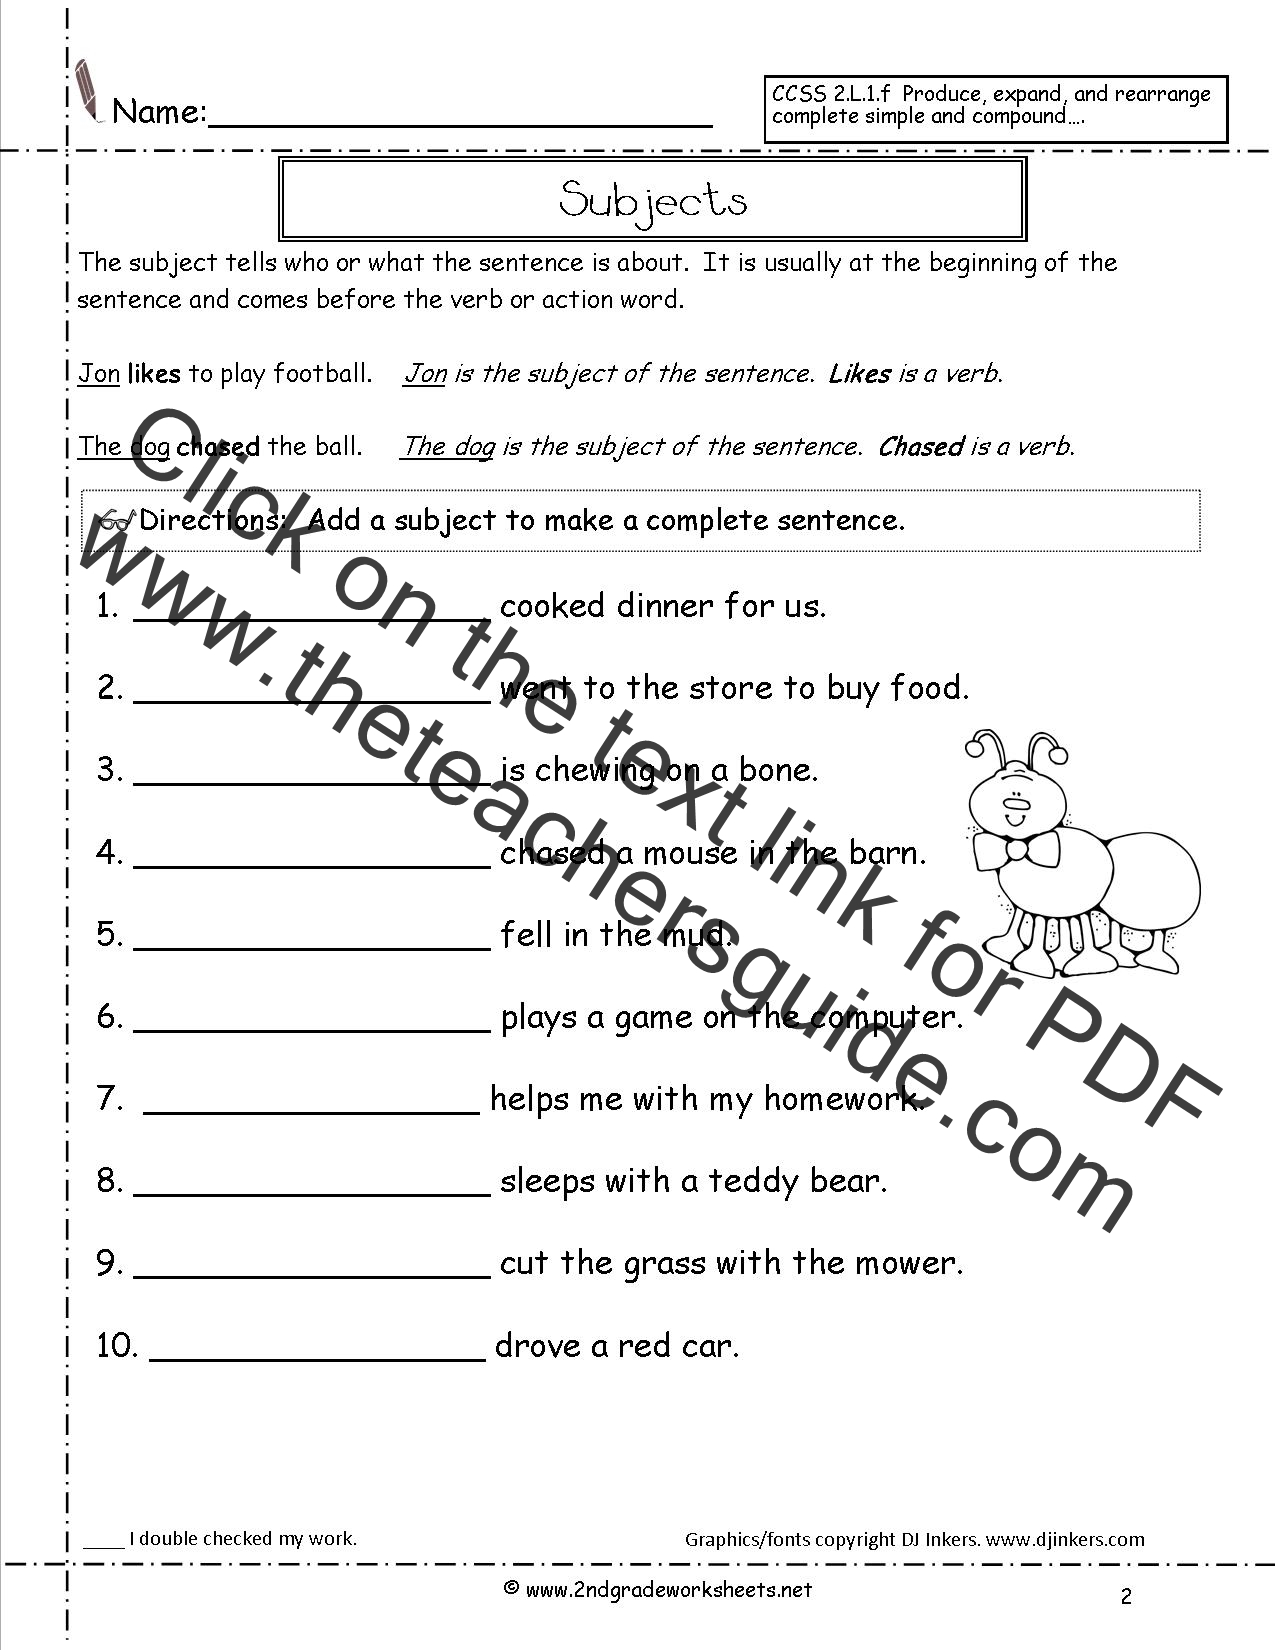 Worksheets Kinds Of Sentences Worksheet second grade sentences worksheets ccss 2 l 1 f subjects worksheet sentence subjects